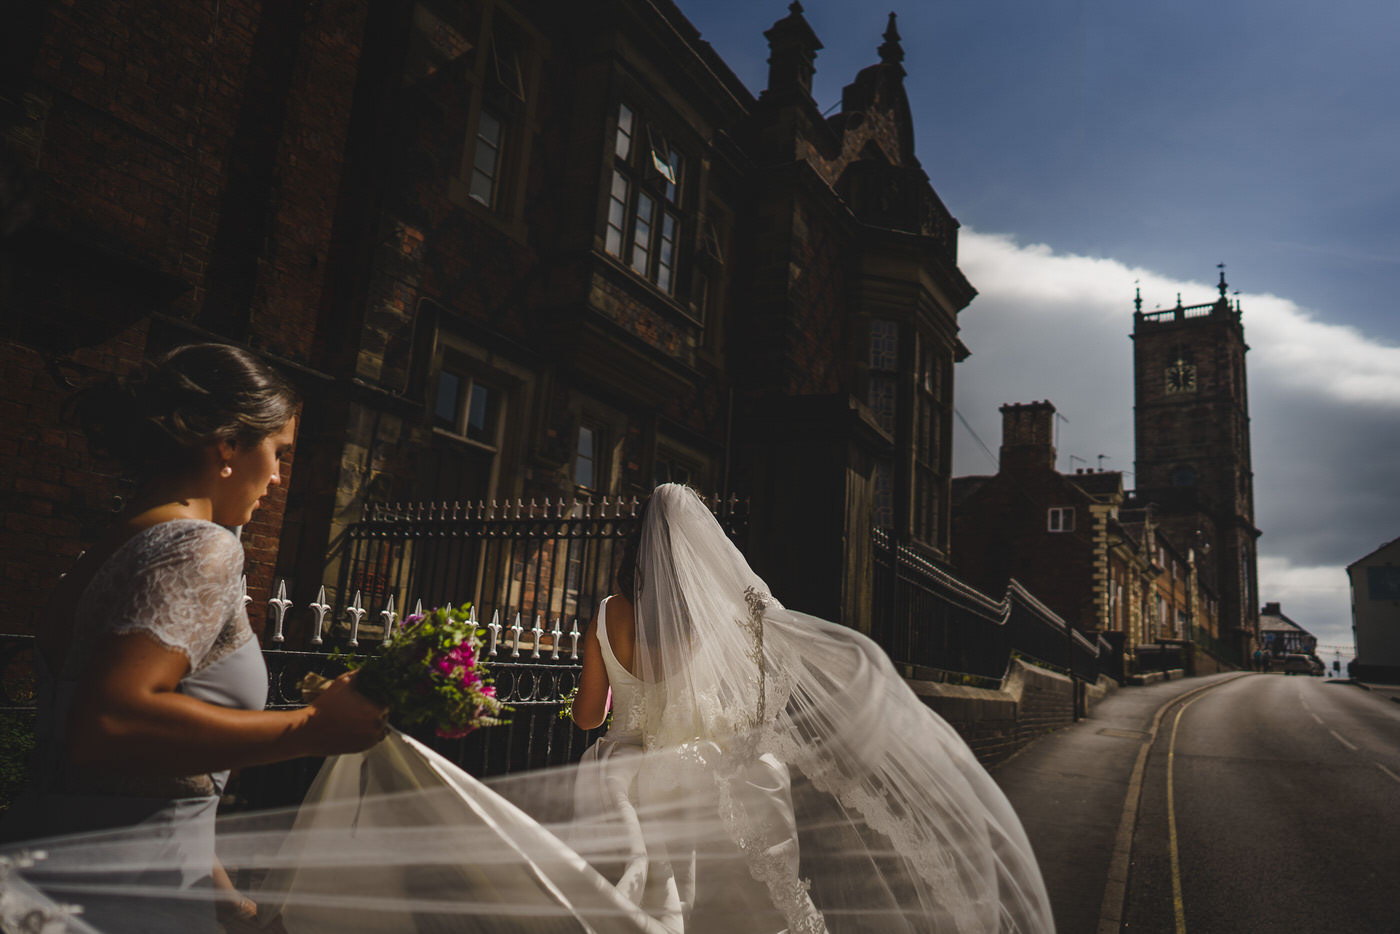 wedding photographer in shropshire captures bride and sister on the way to the church